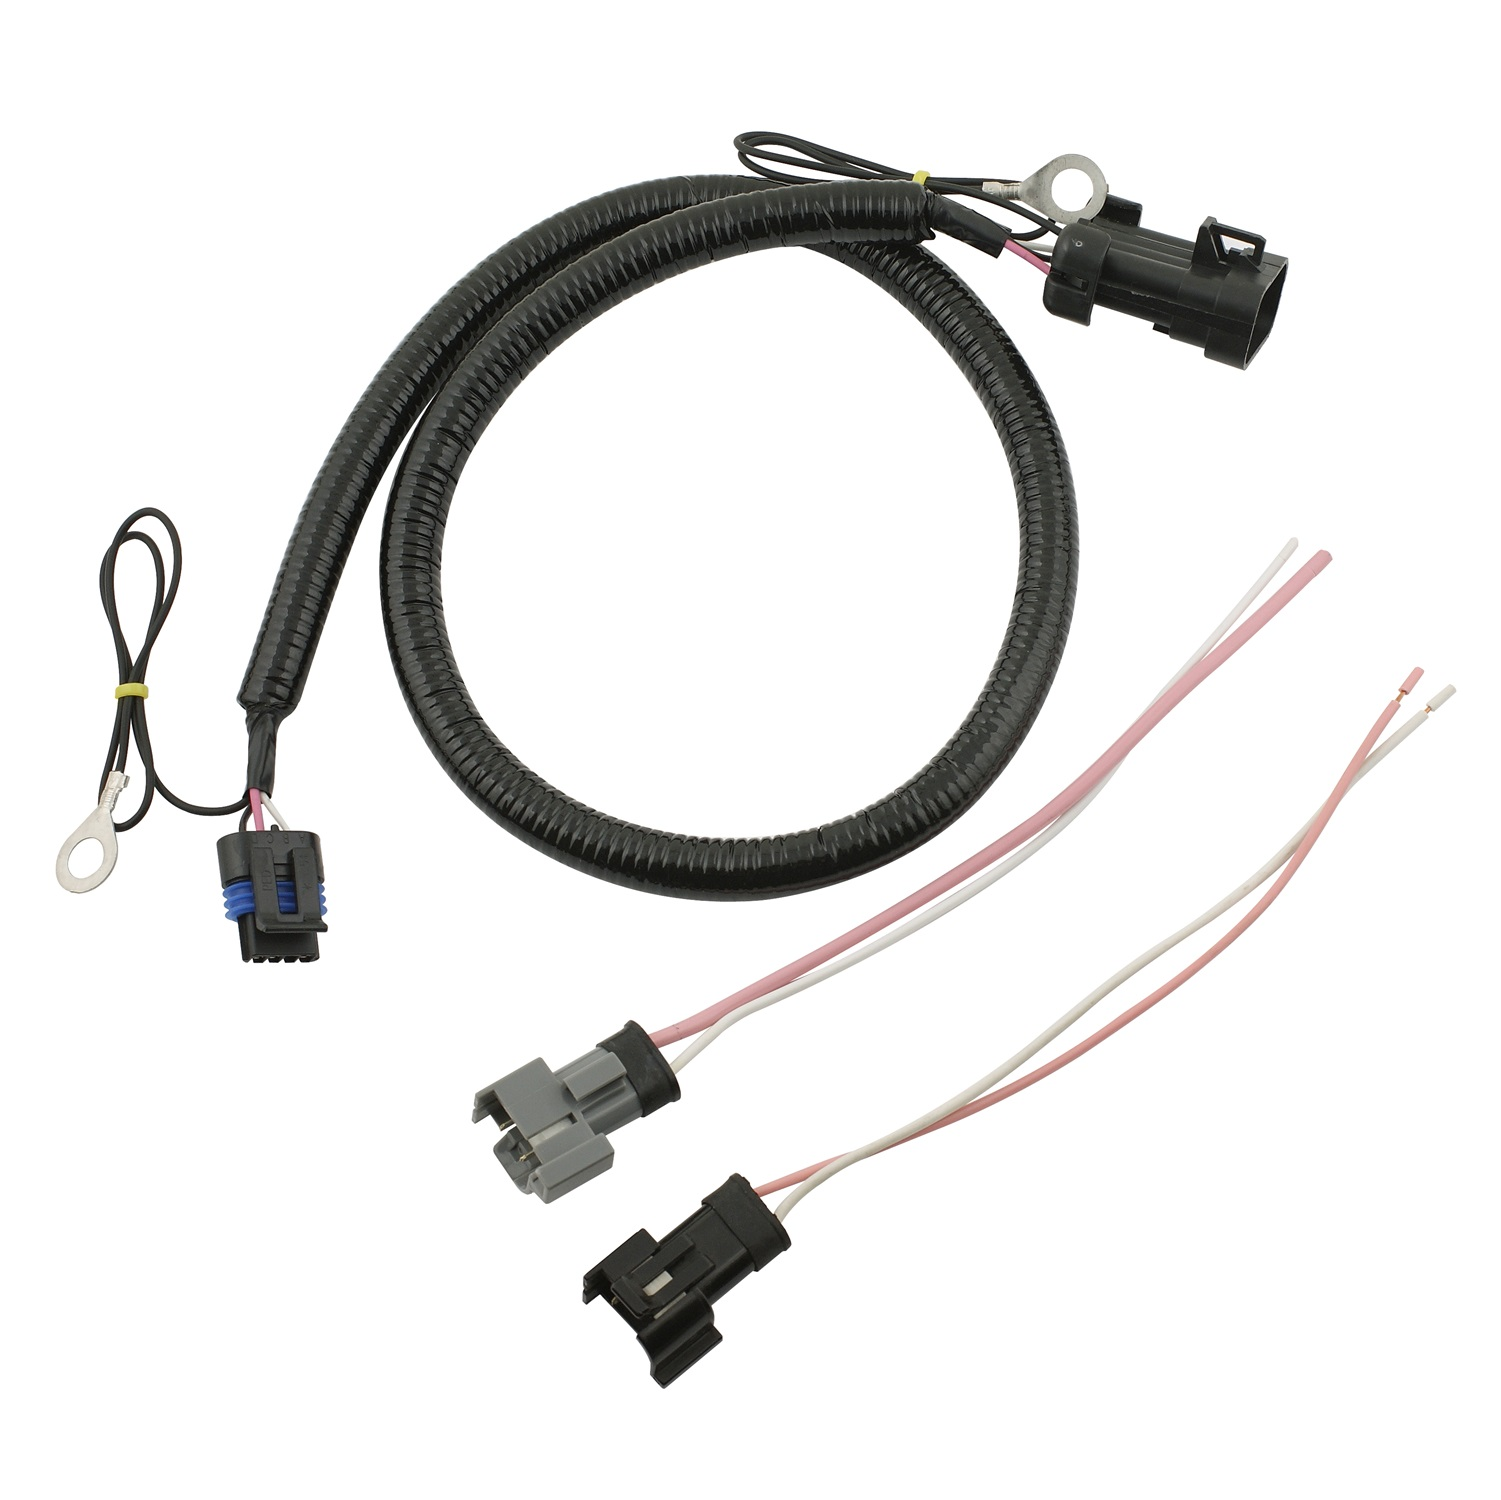 mallory 77652m firestorm lt1 ignition adapter harness fits